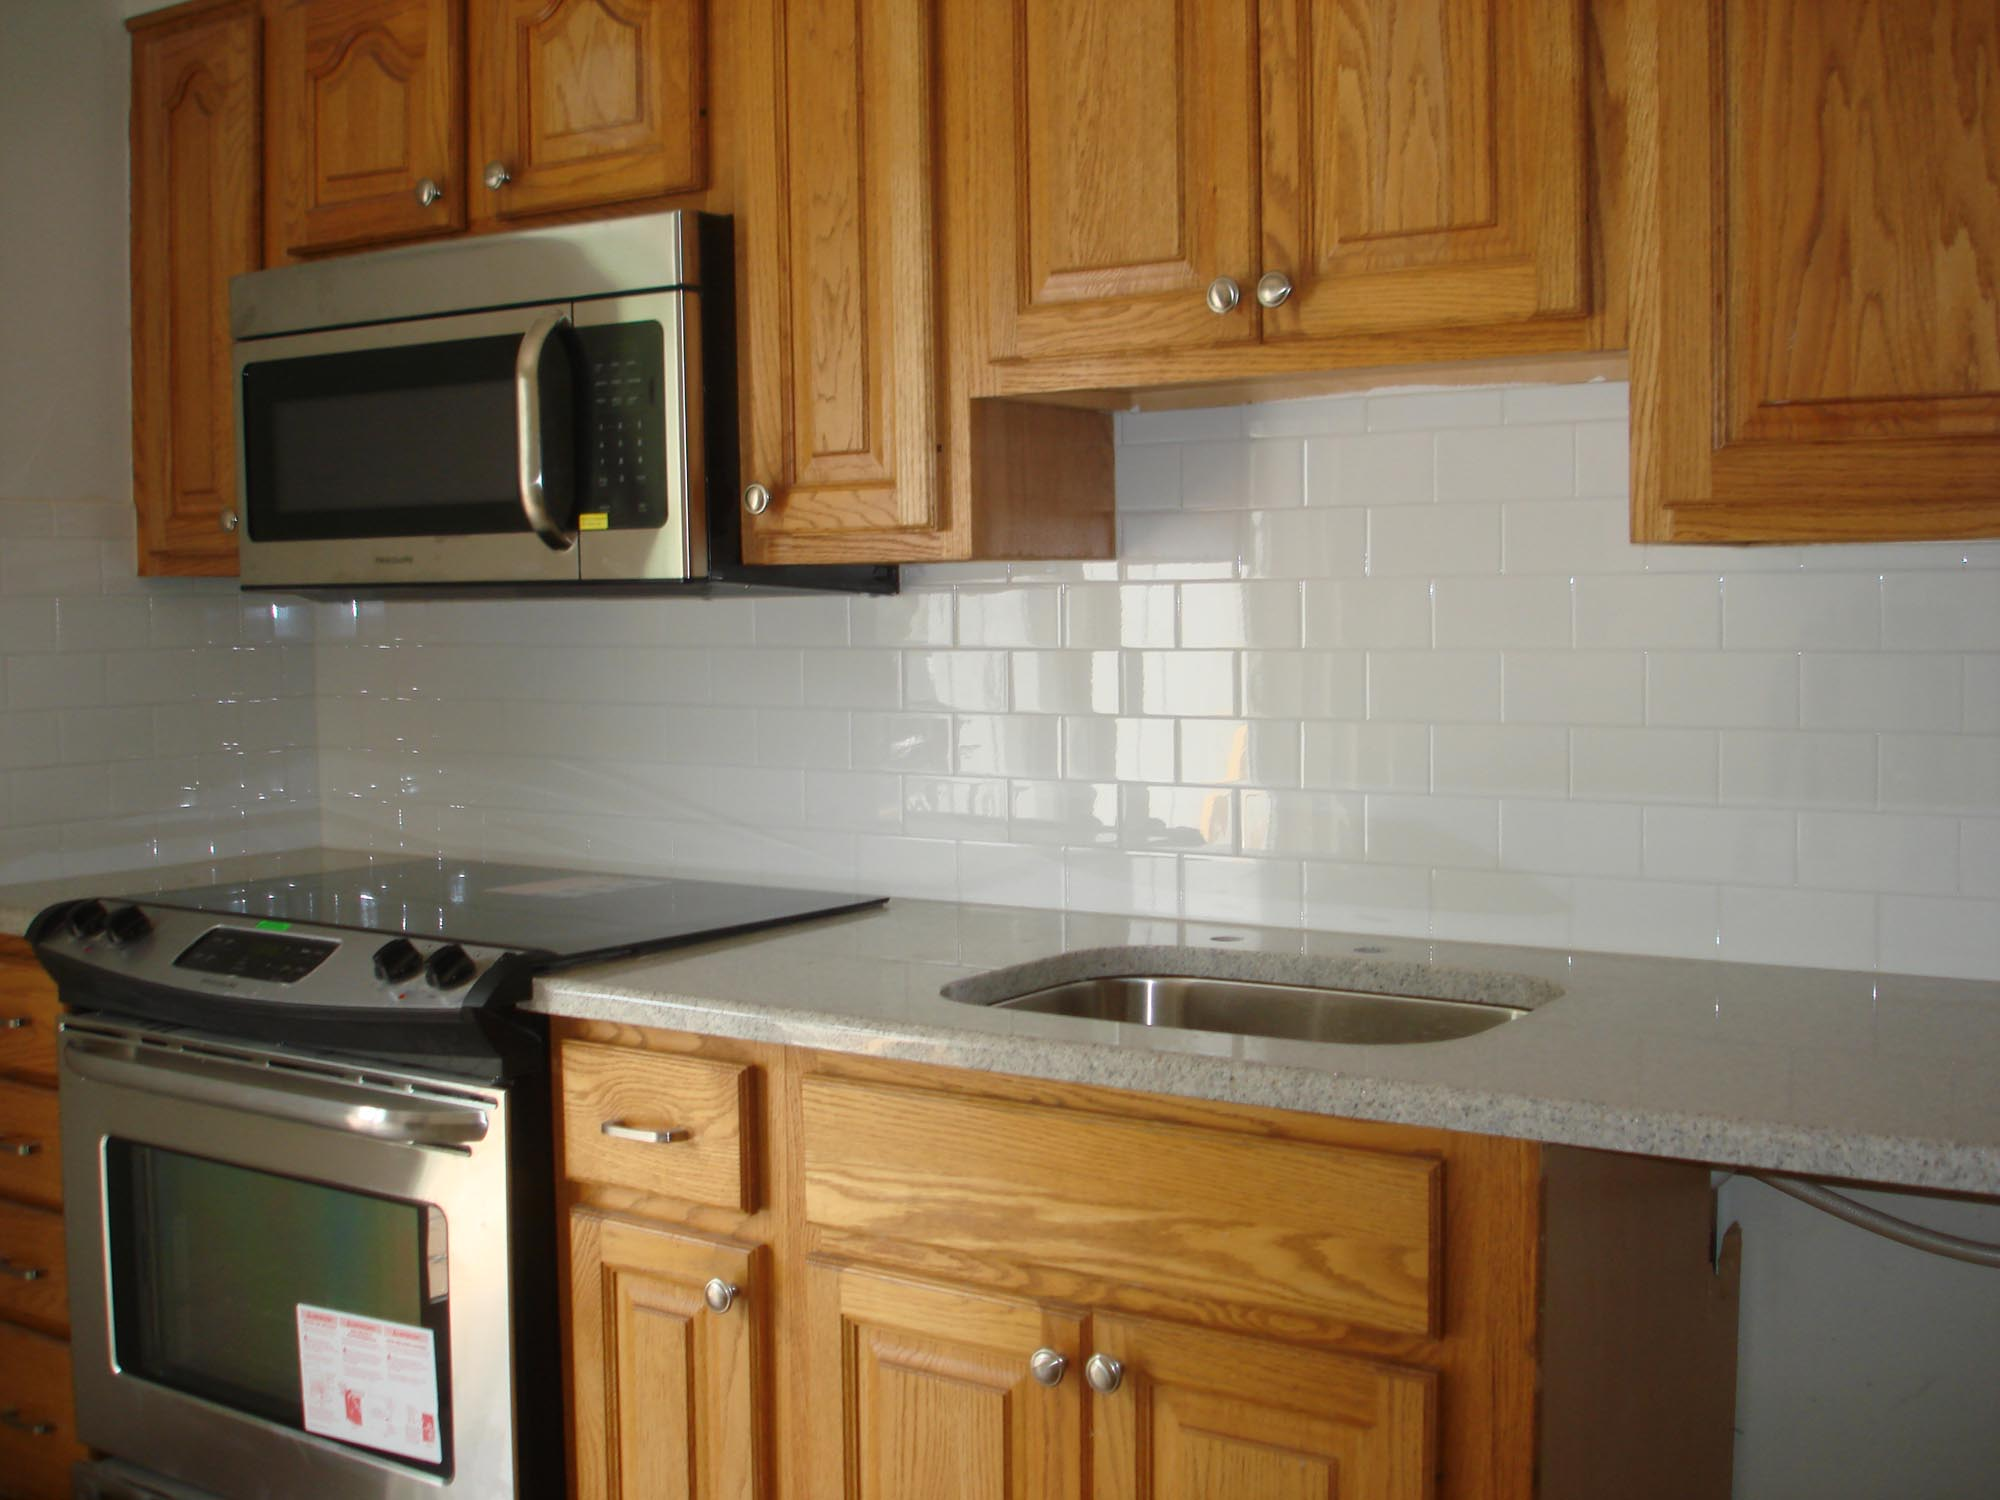 Clean And Simple Kitchen Backsplash: White 3x6 Subway Tile